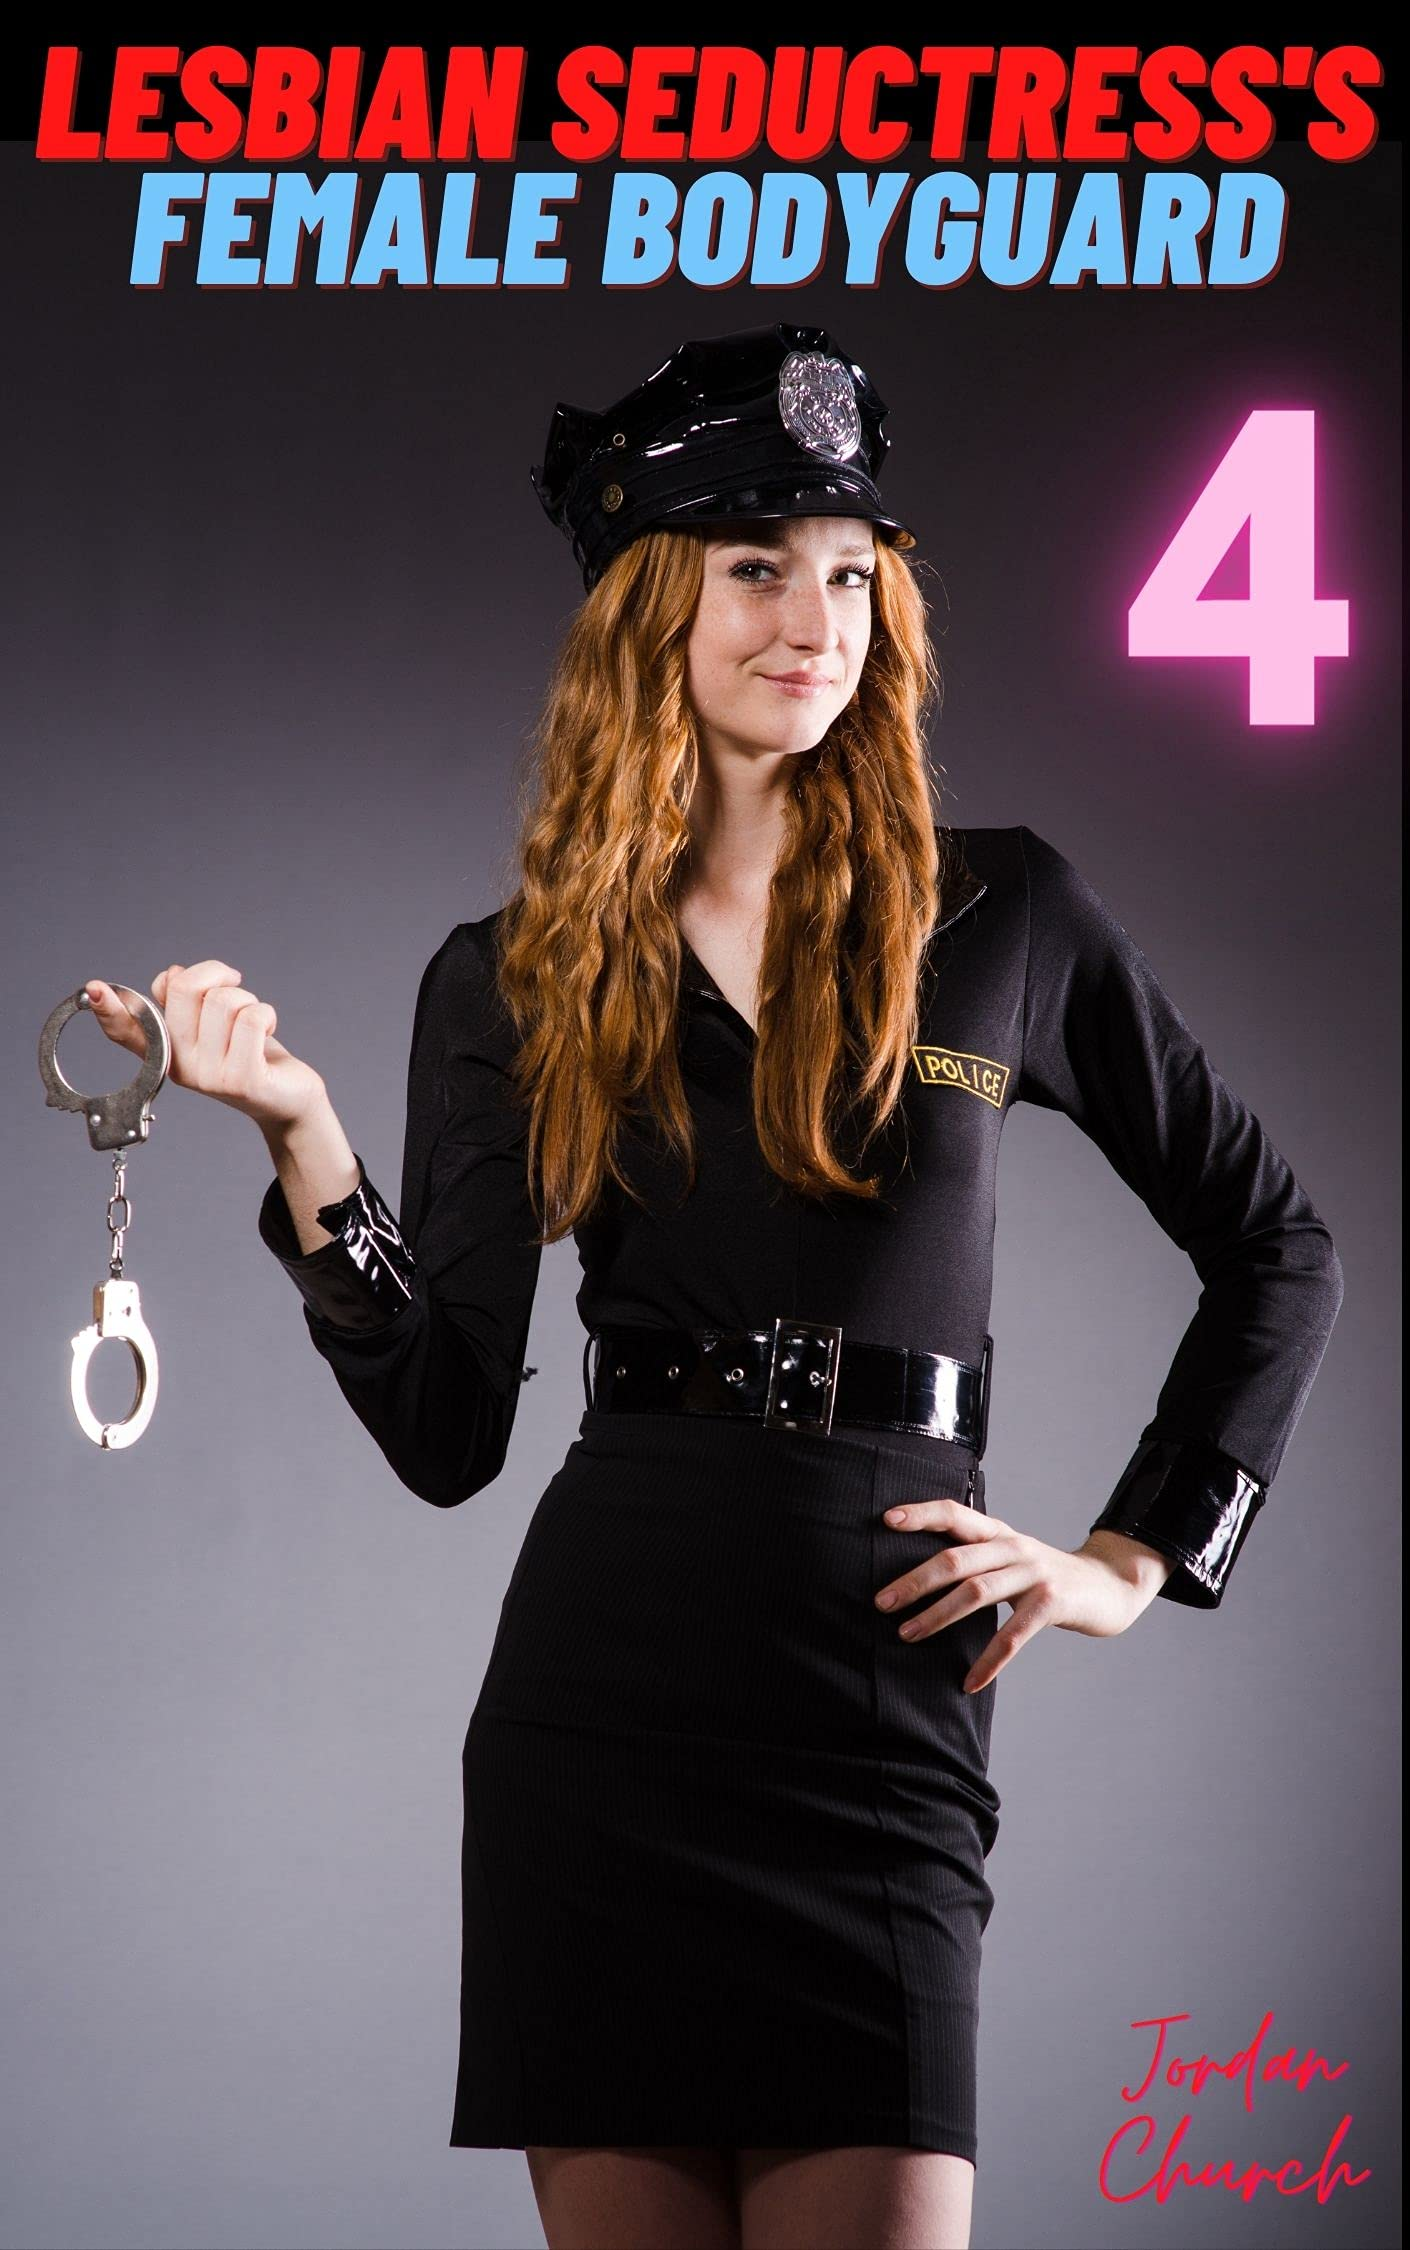 Lesbian Seductress's Female Bodyguard 4: Her New Bratty Mistress Gets Bellamy to Seduce and Dominate a Redheaded Female Police Officer